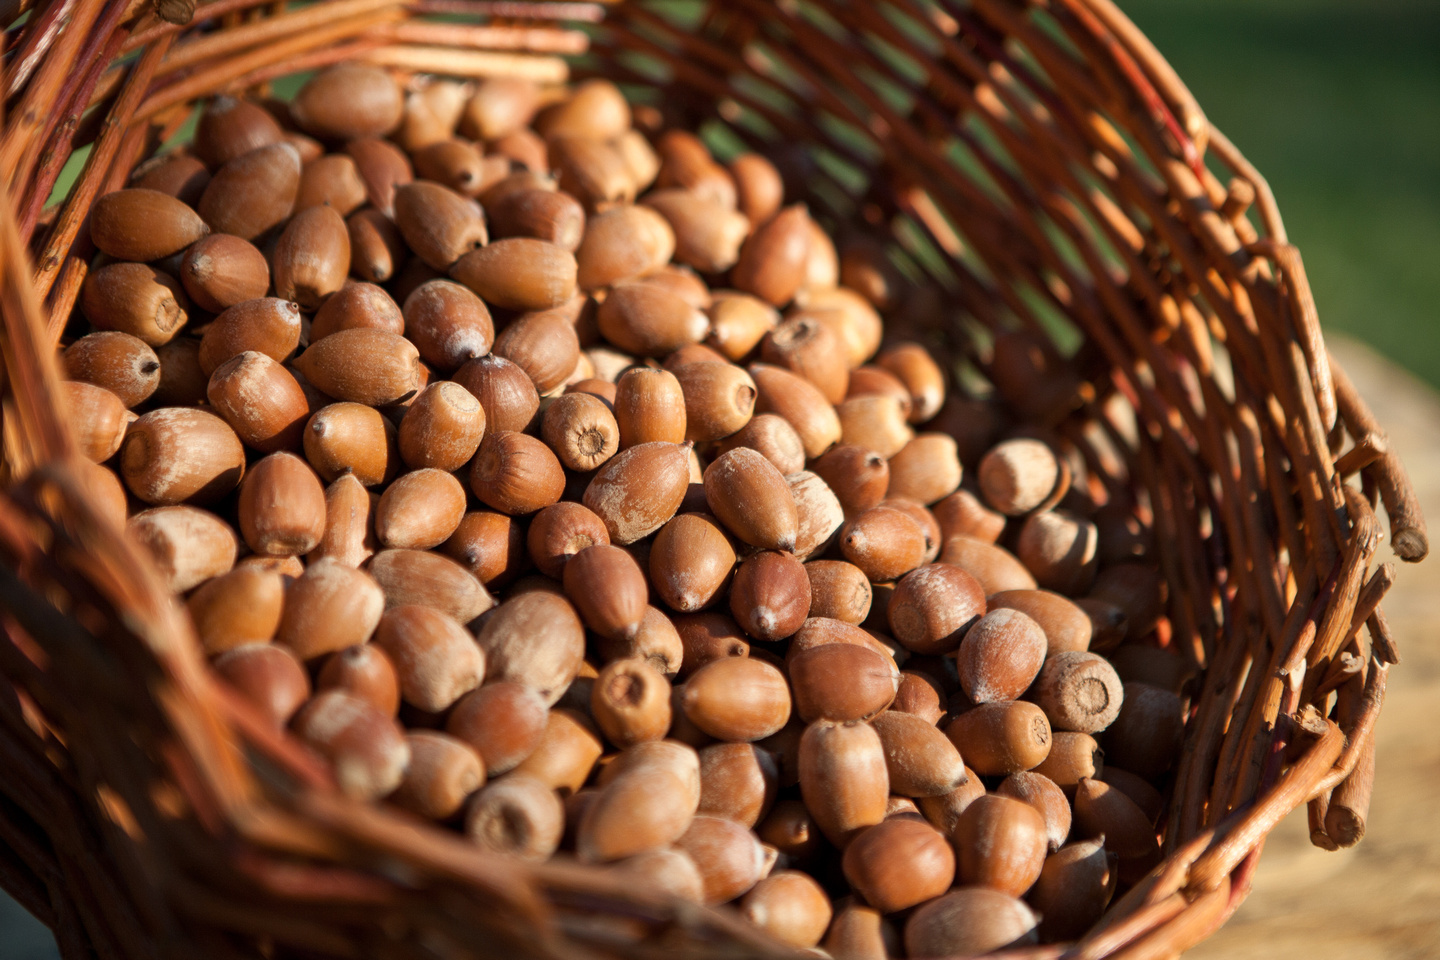 acorns in basket.jpg